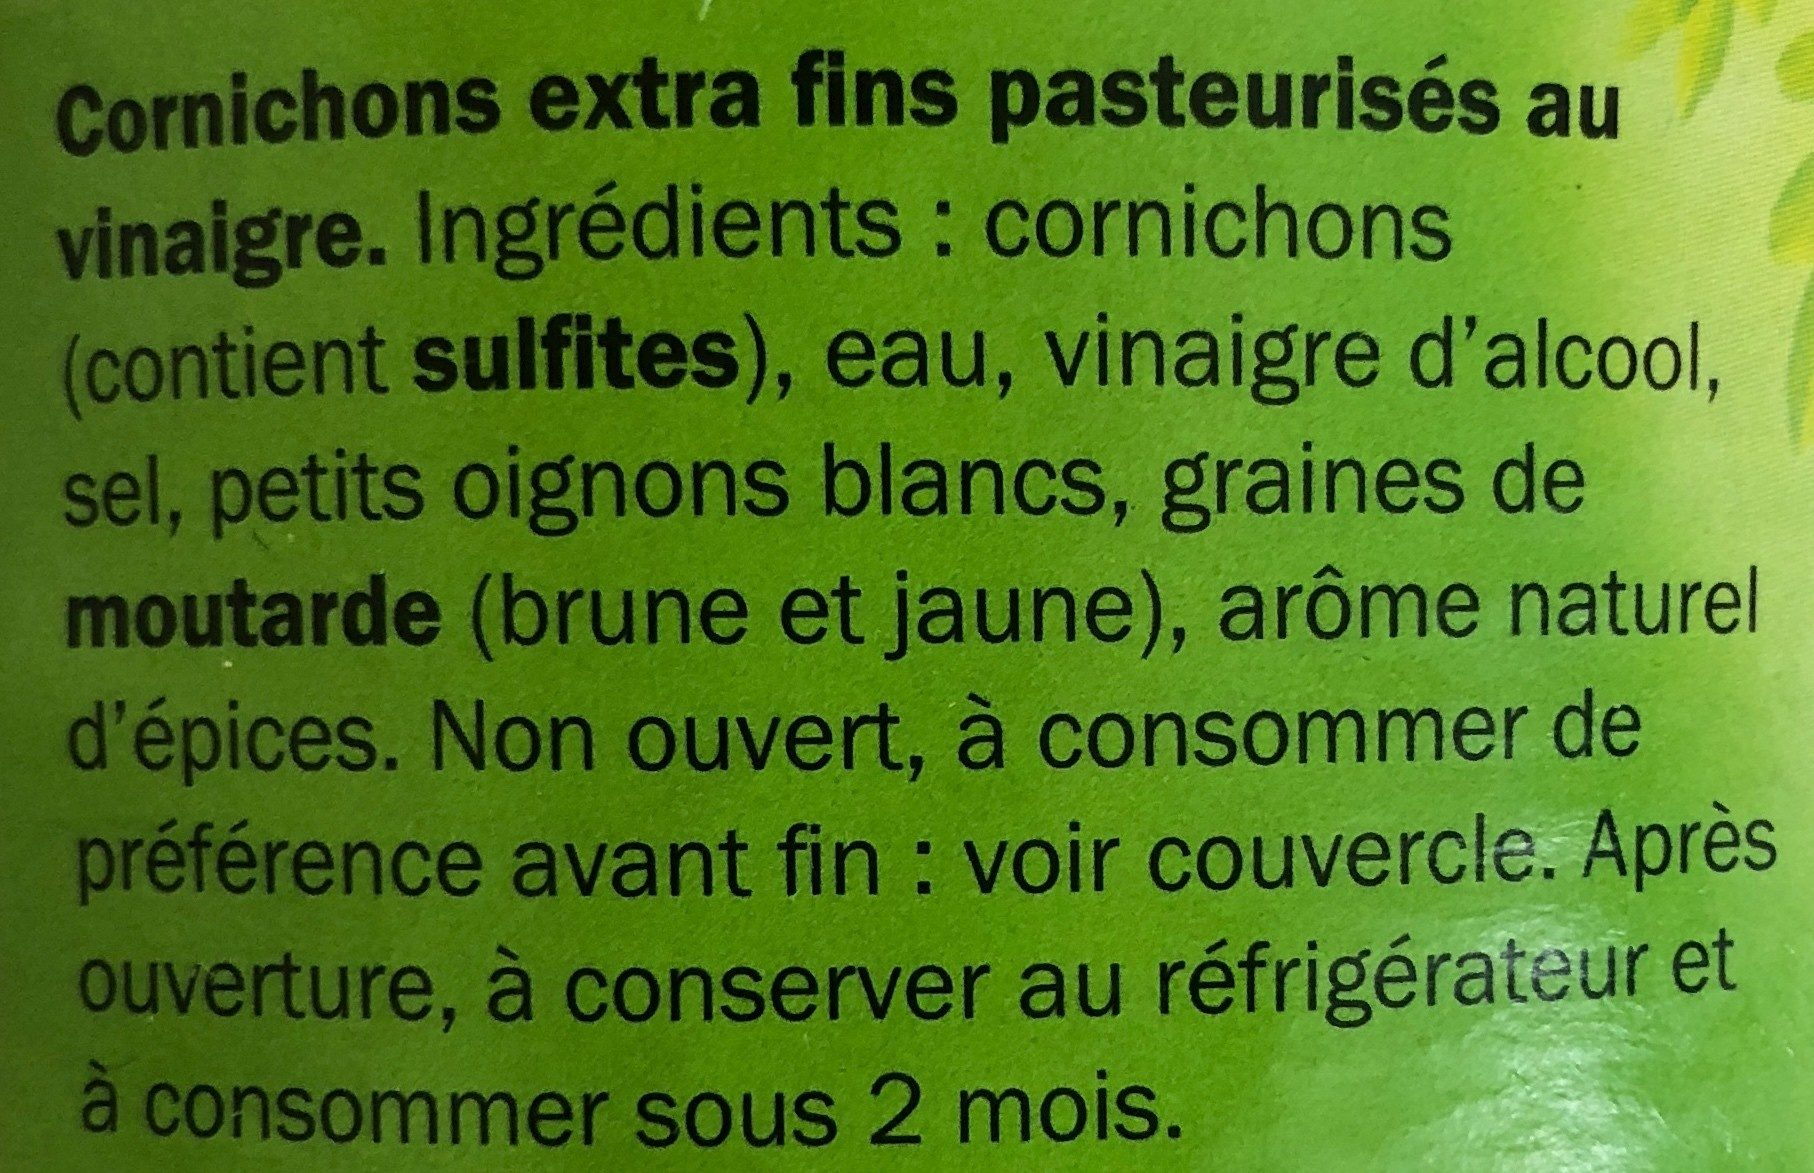 Cornichons - extra fins - Ingredients